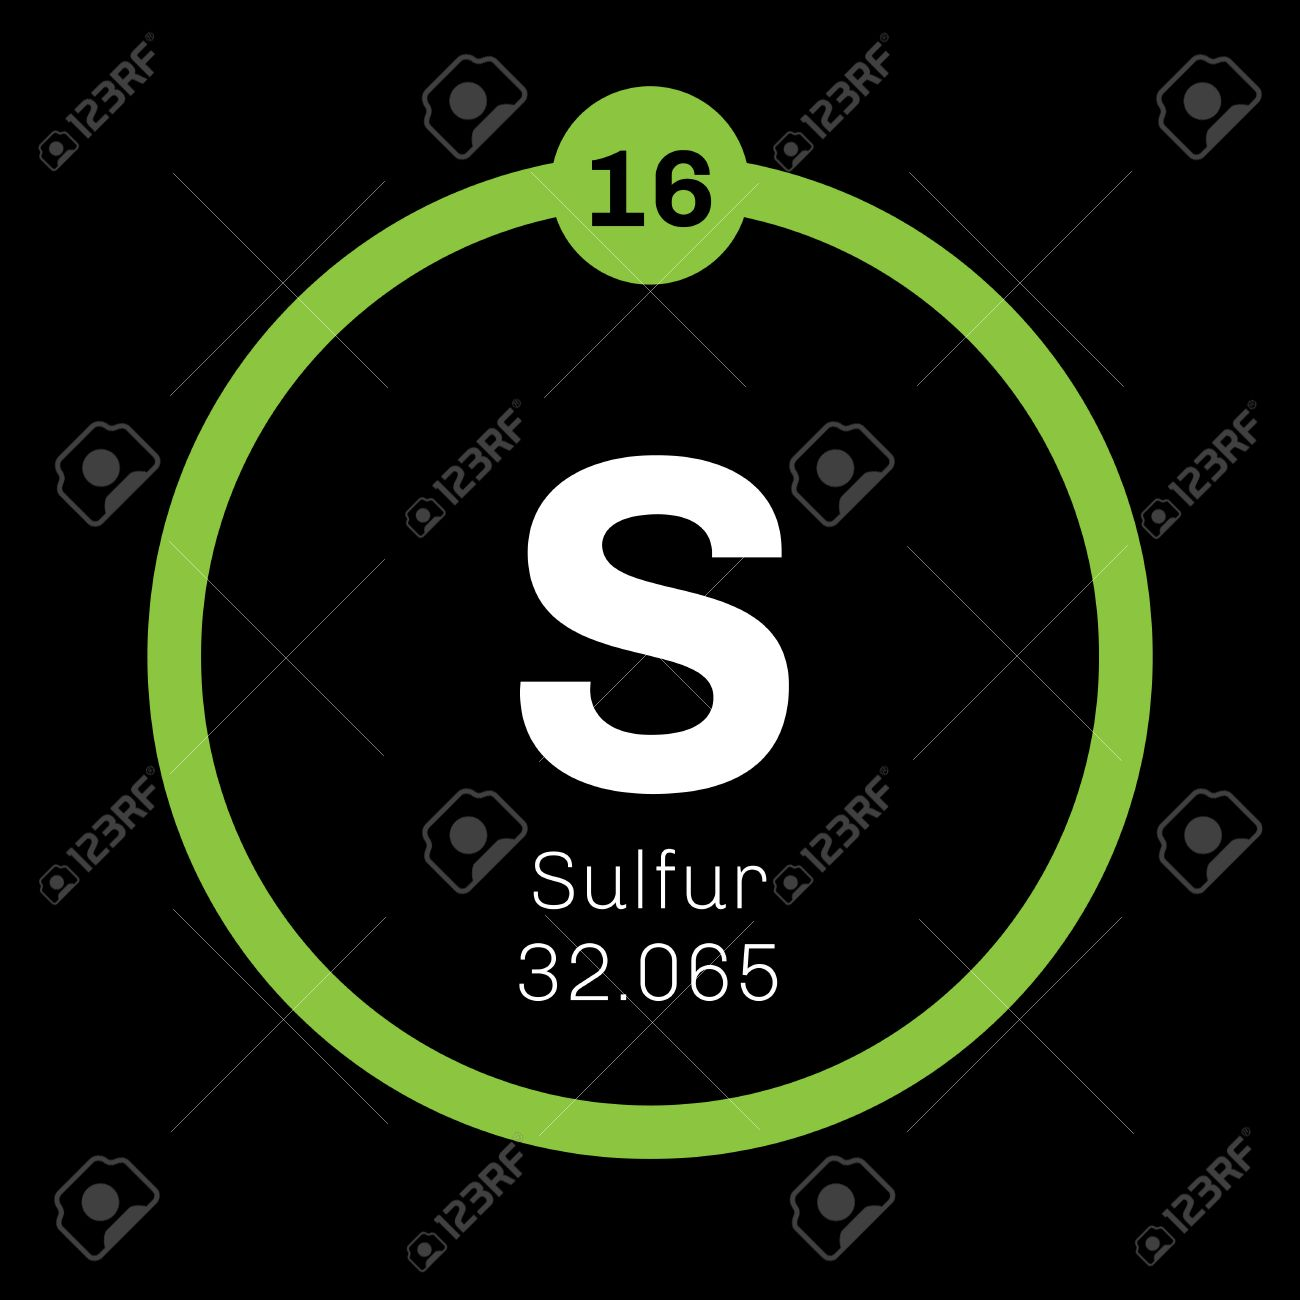 Sulfur Chemical Element Abundant Non Metal Element Colored